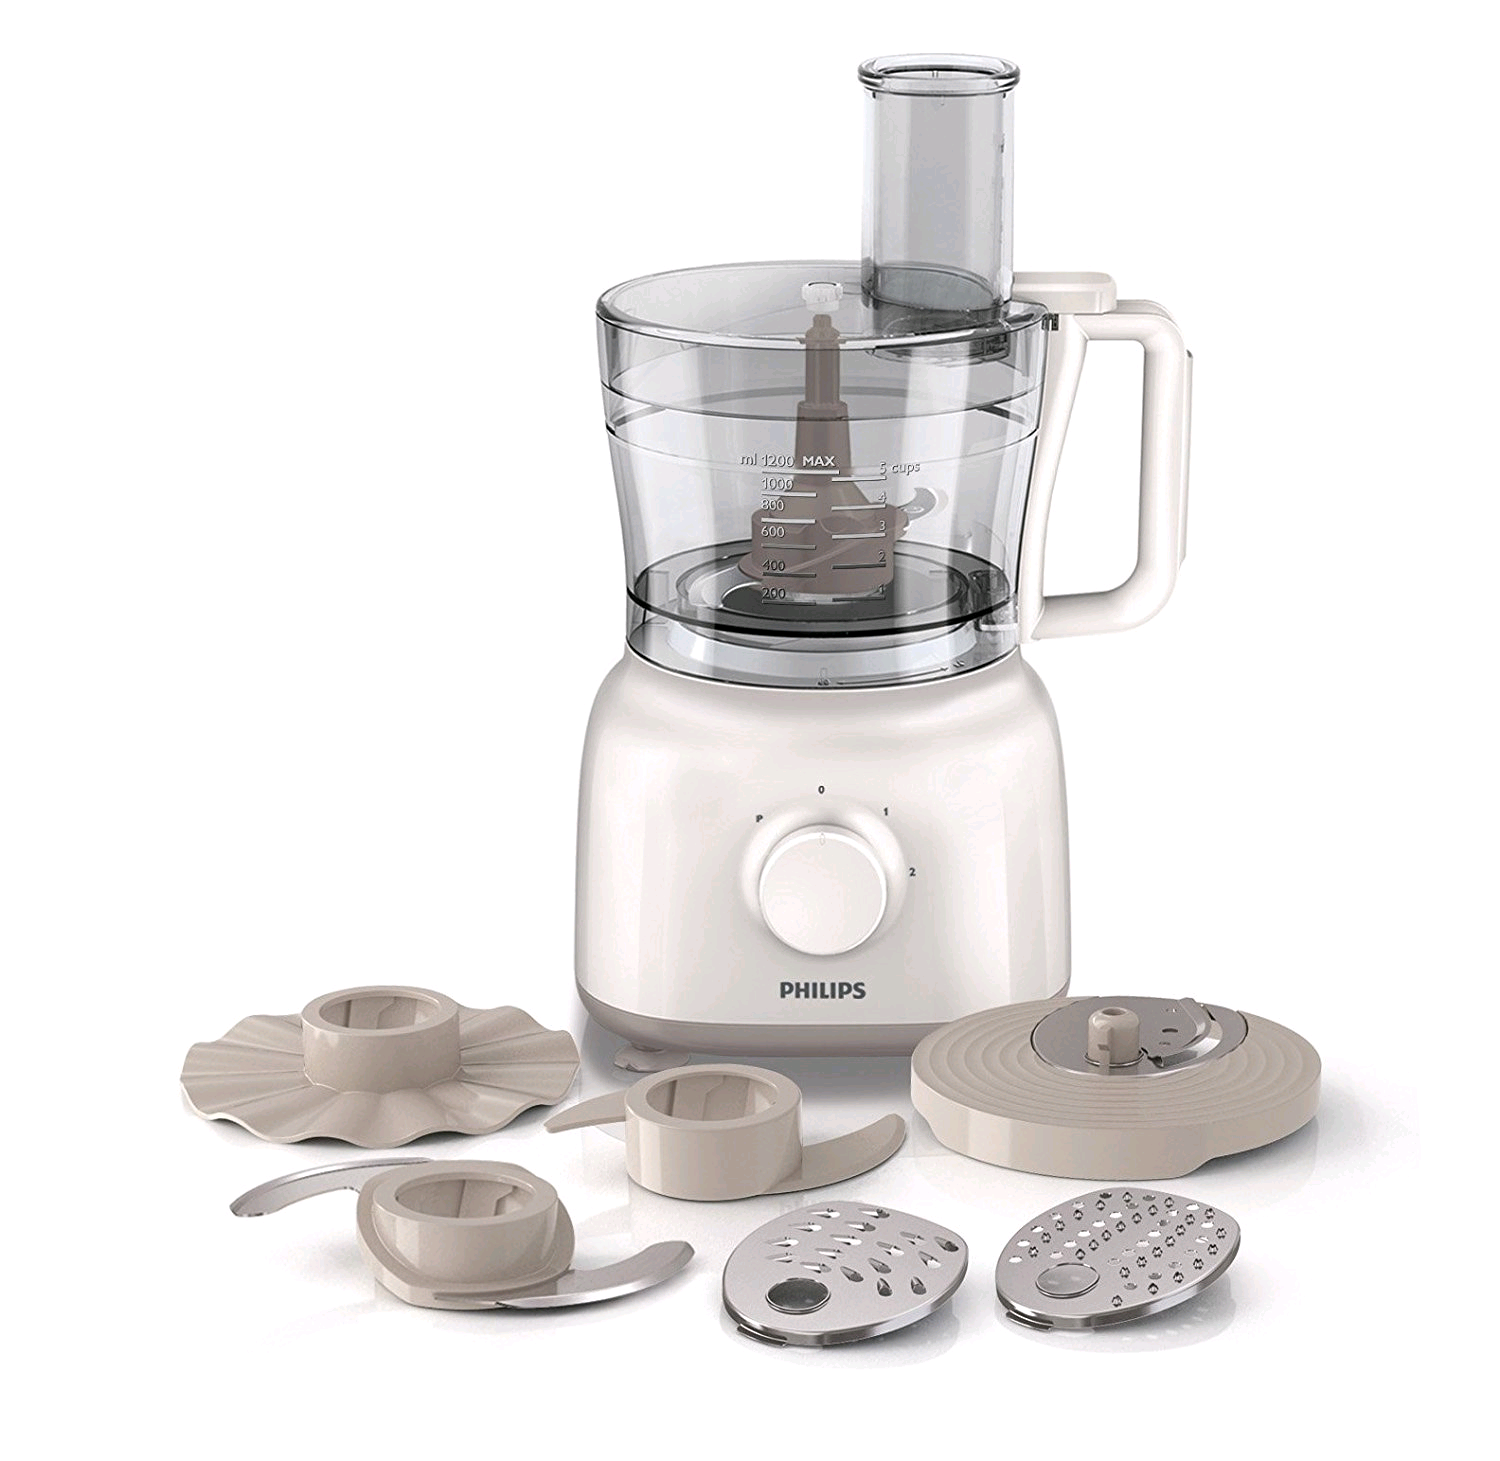 Philips HR7627/01 Daily Food Processor, 1.5 Litre, 650 Watt - White [Energy Class A]